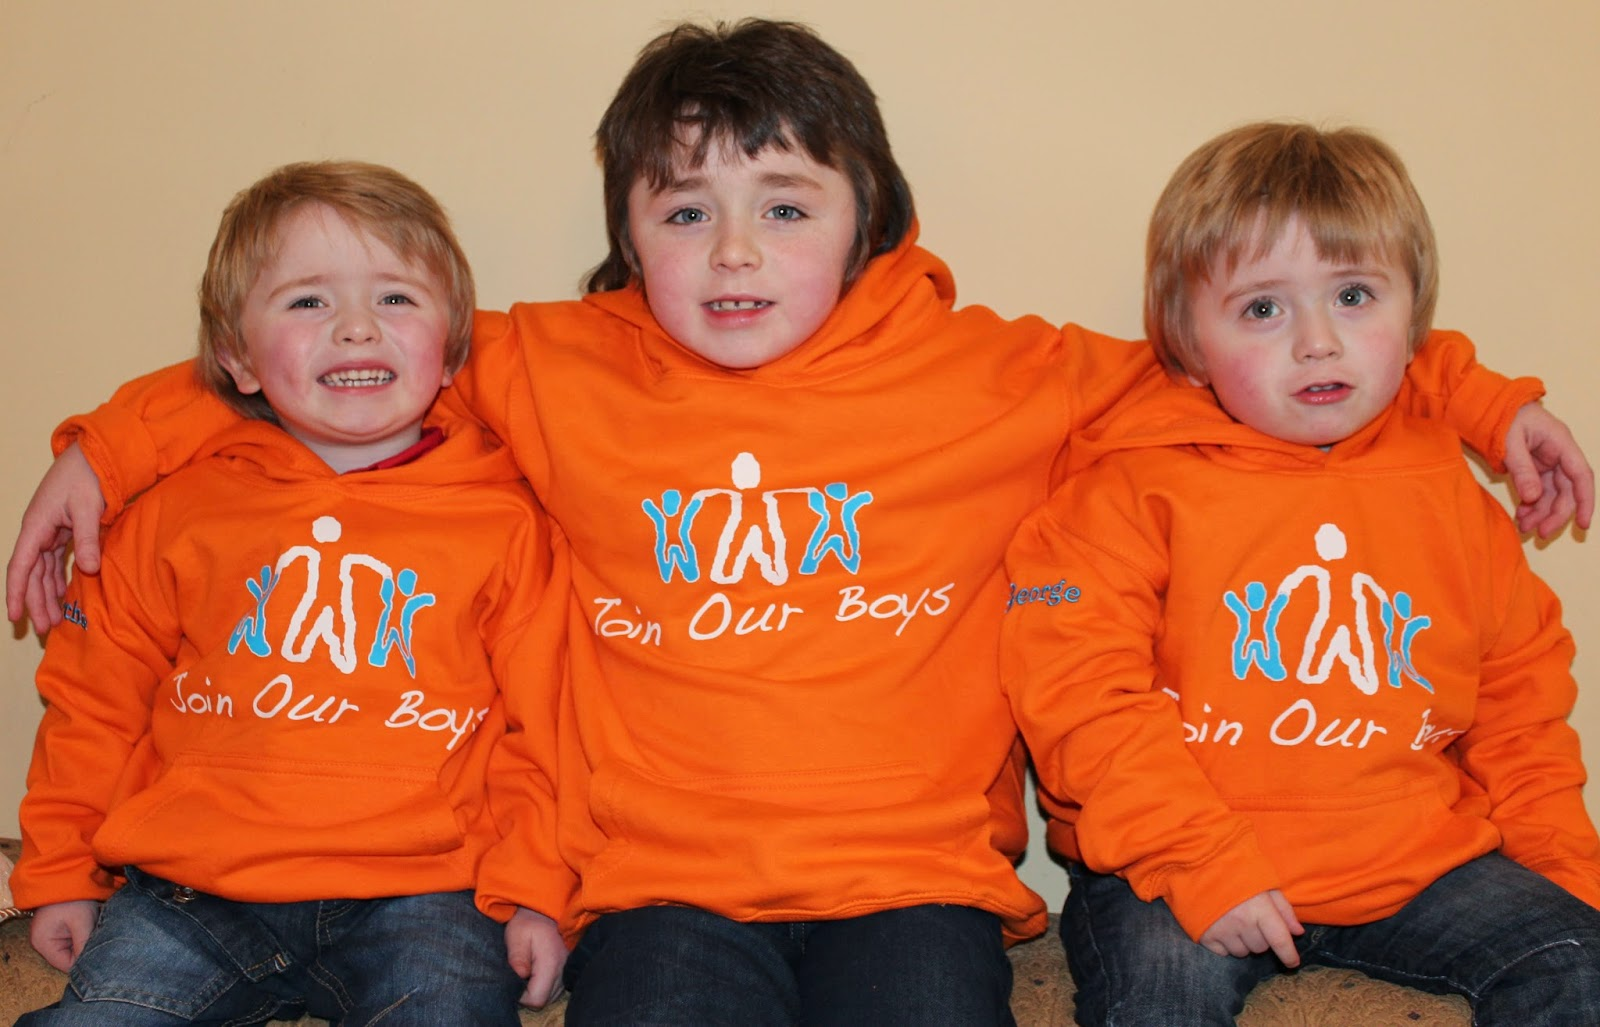 Delayed Diagnosis Of Duchenne Muscular Dystrophy Realboyle Blog Join Our Boys Trust